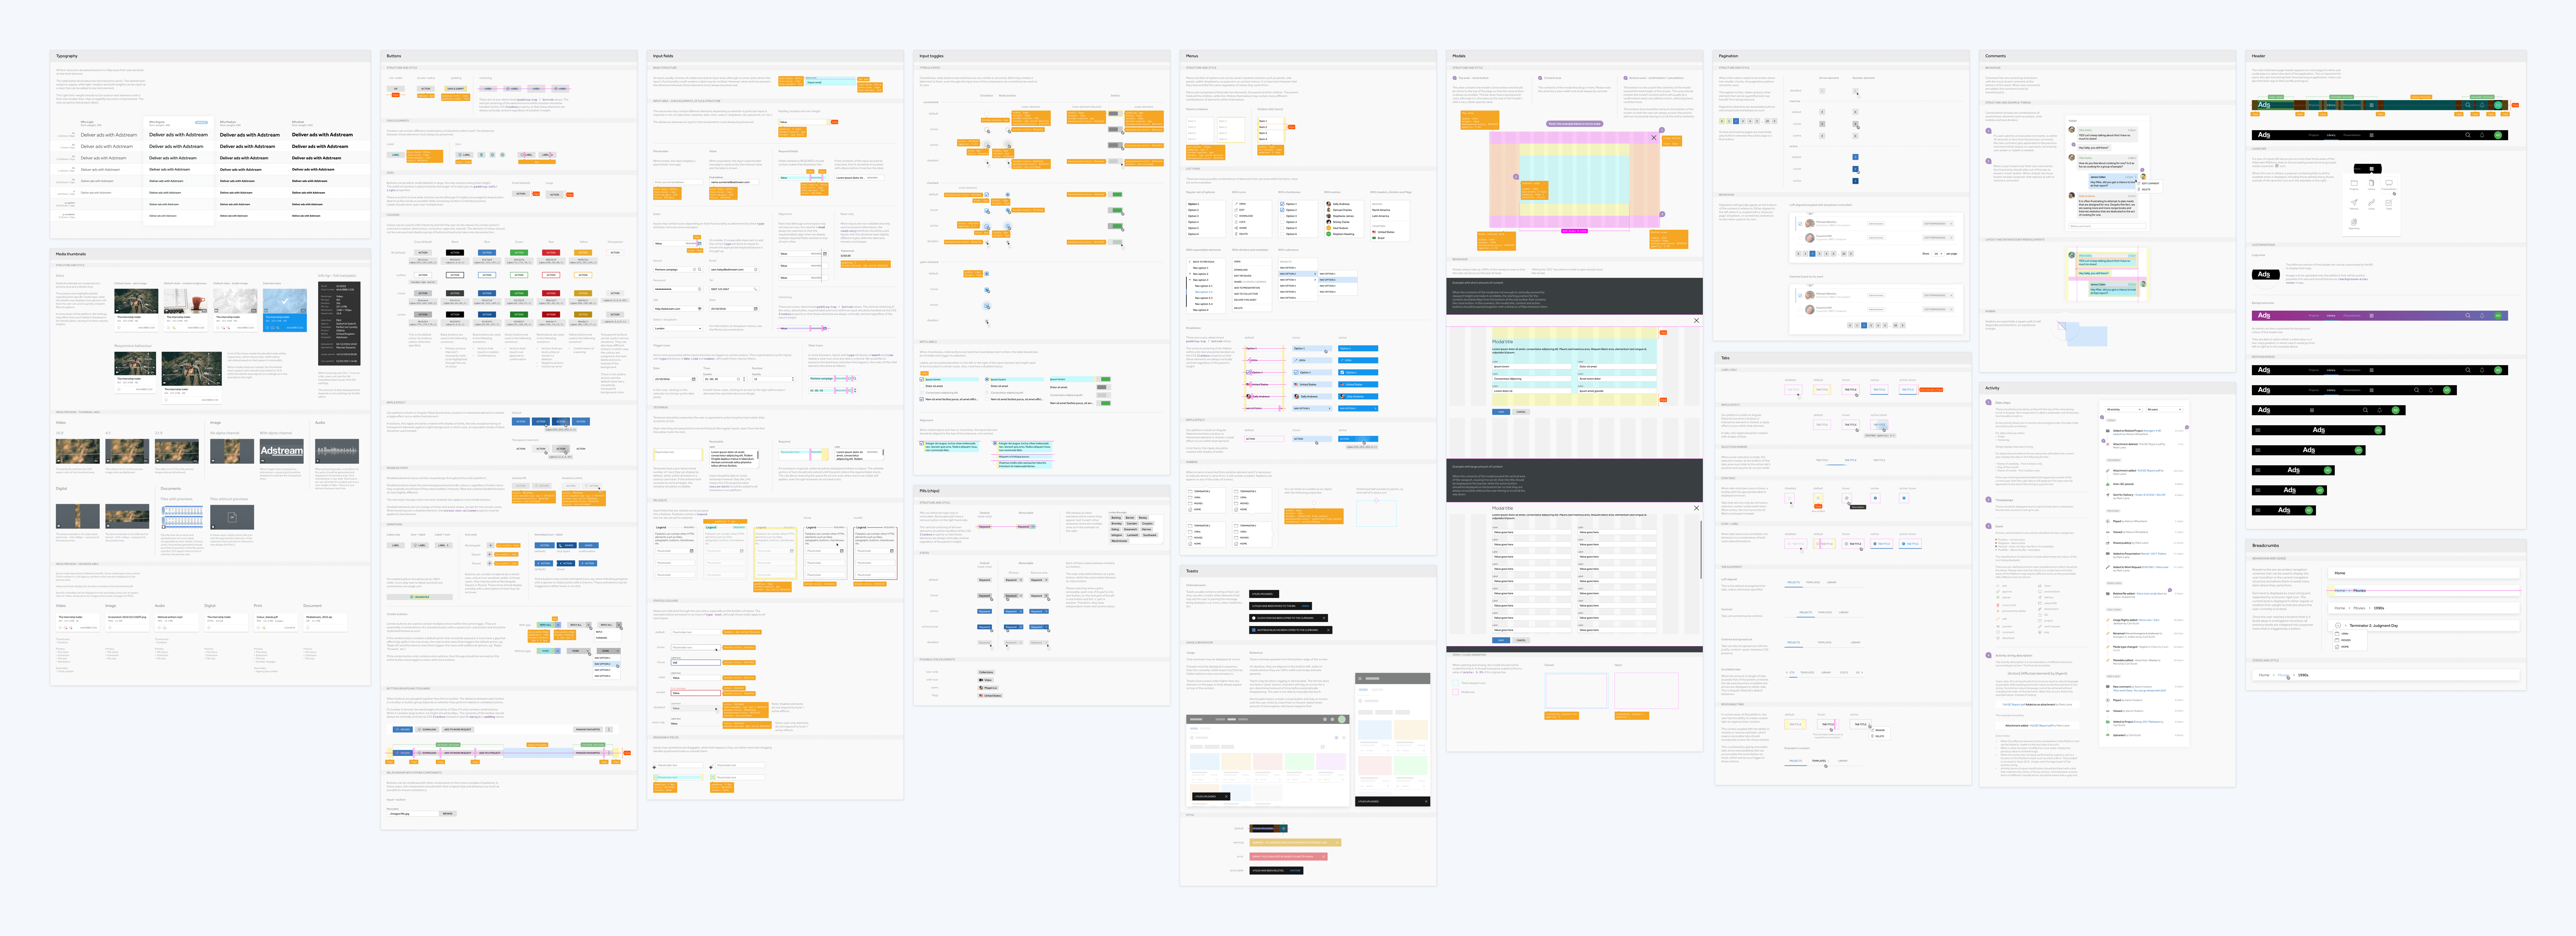 Various documentation pages in Zeplin